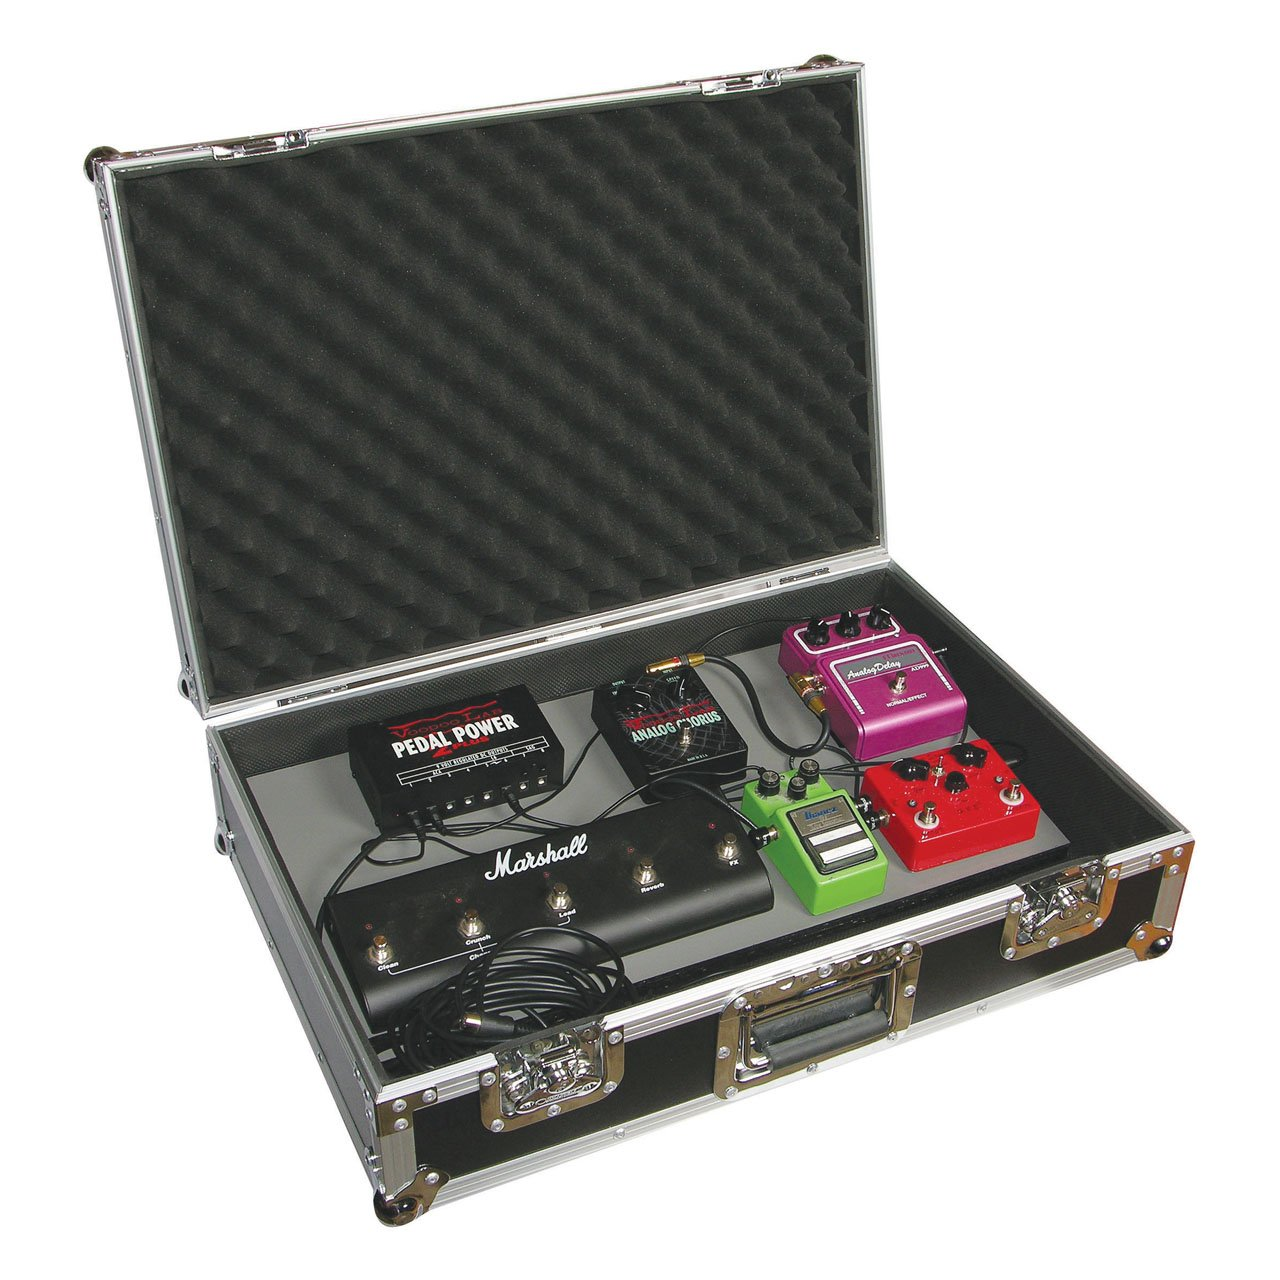 Odyssey FZGPEDAL24 Flight Zone 24 Guitar Pedal Board Ata Case Odyssey Innovative Designs